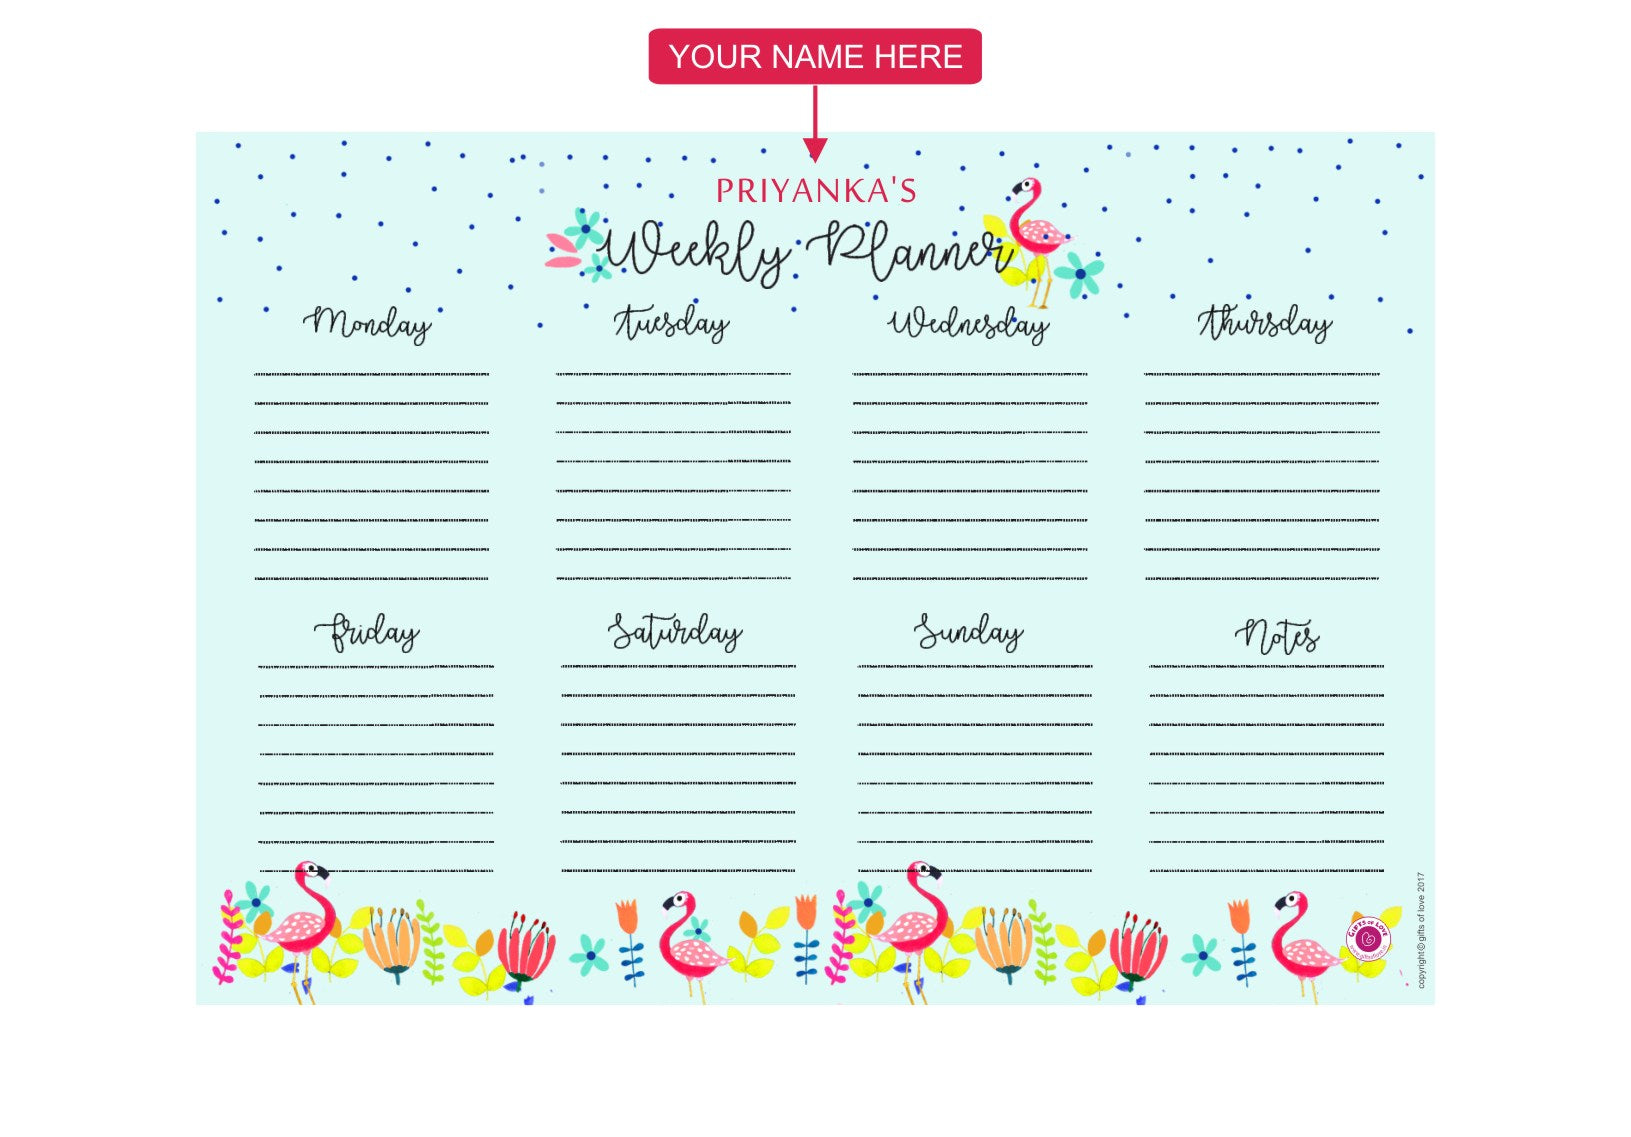 Gifts of Love Personalised Notepad Weekly Planner Flamnigo 7.5x5.25